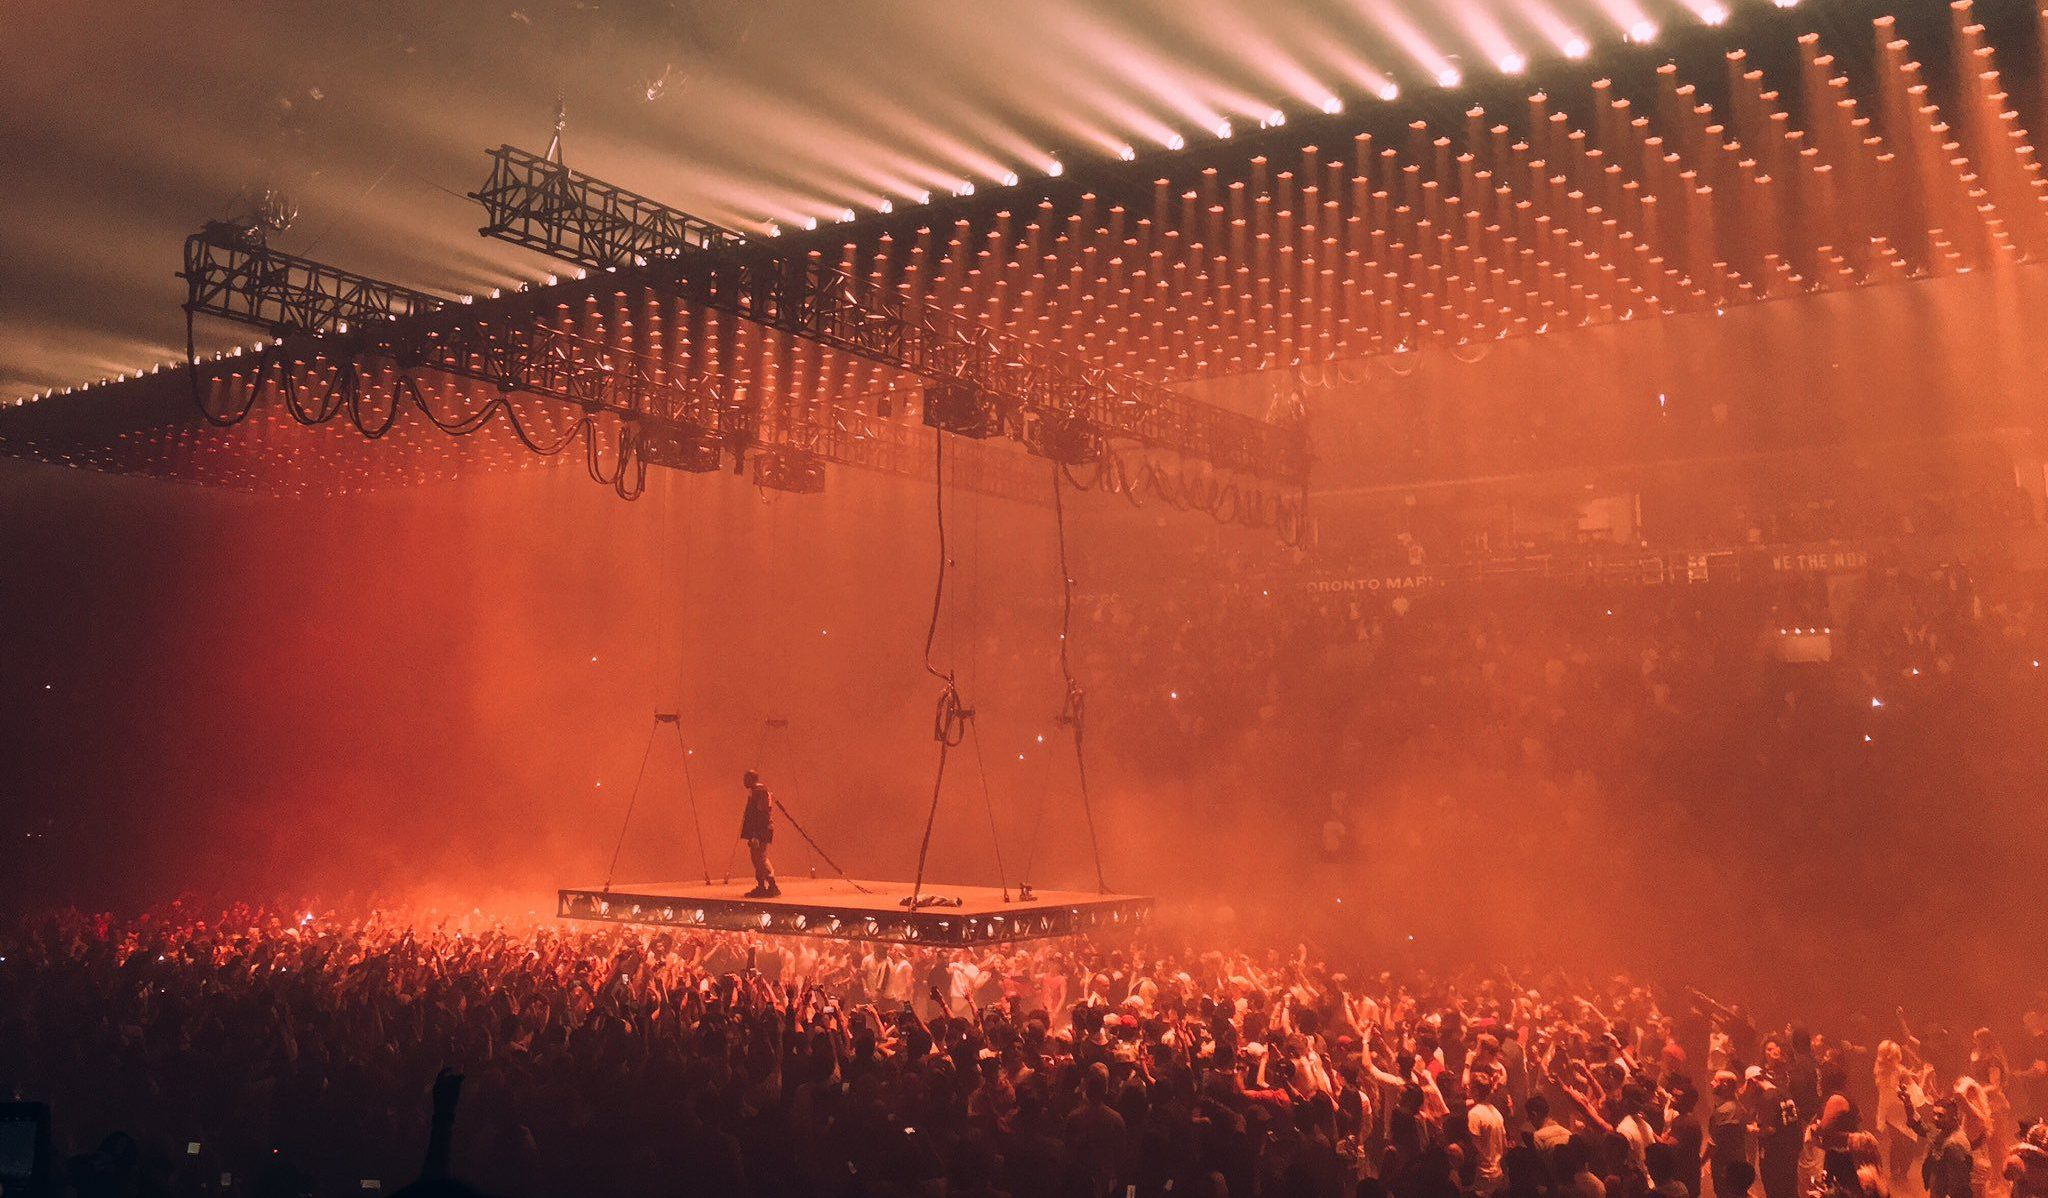 See Kanye West perform in Toronto in front of Kim Kardashian and Travis Scott (PHOTOS)